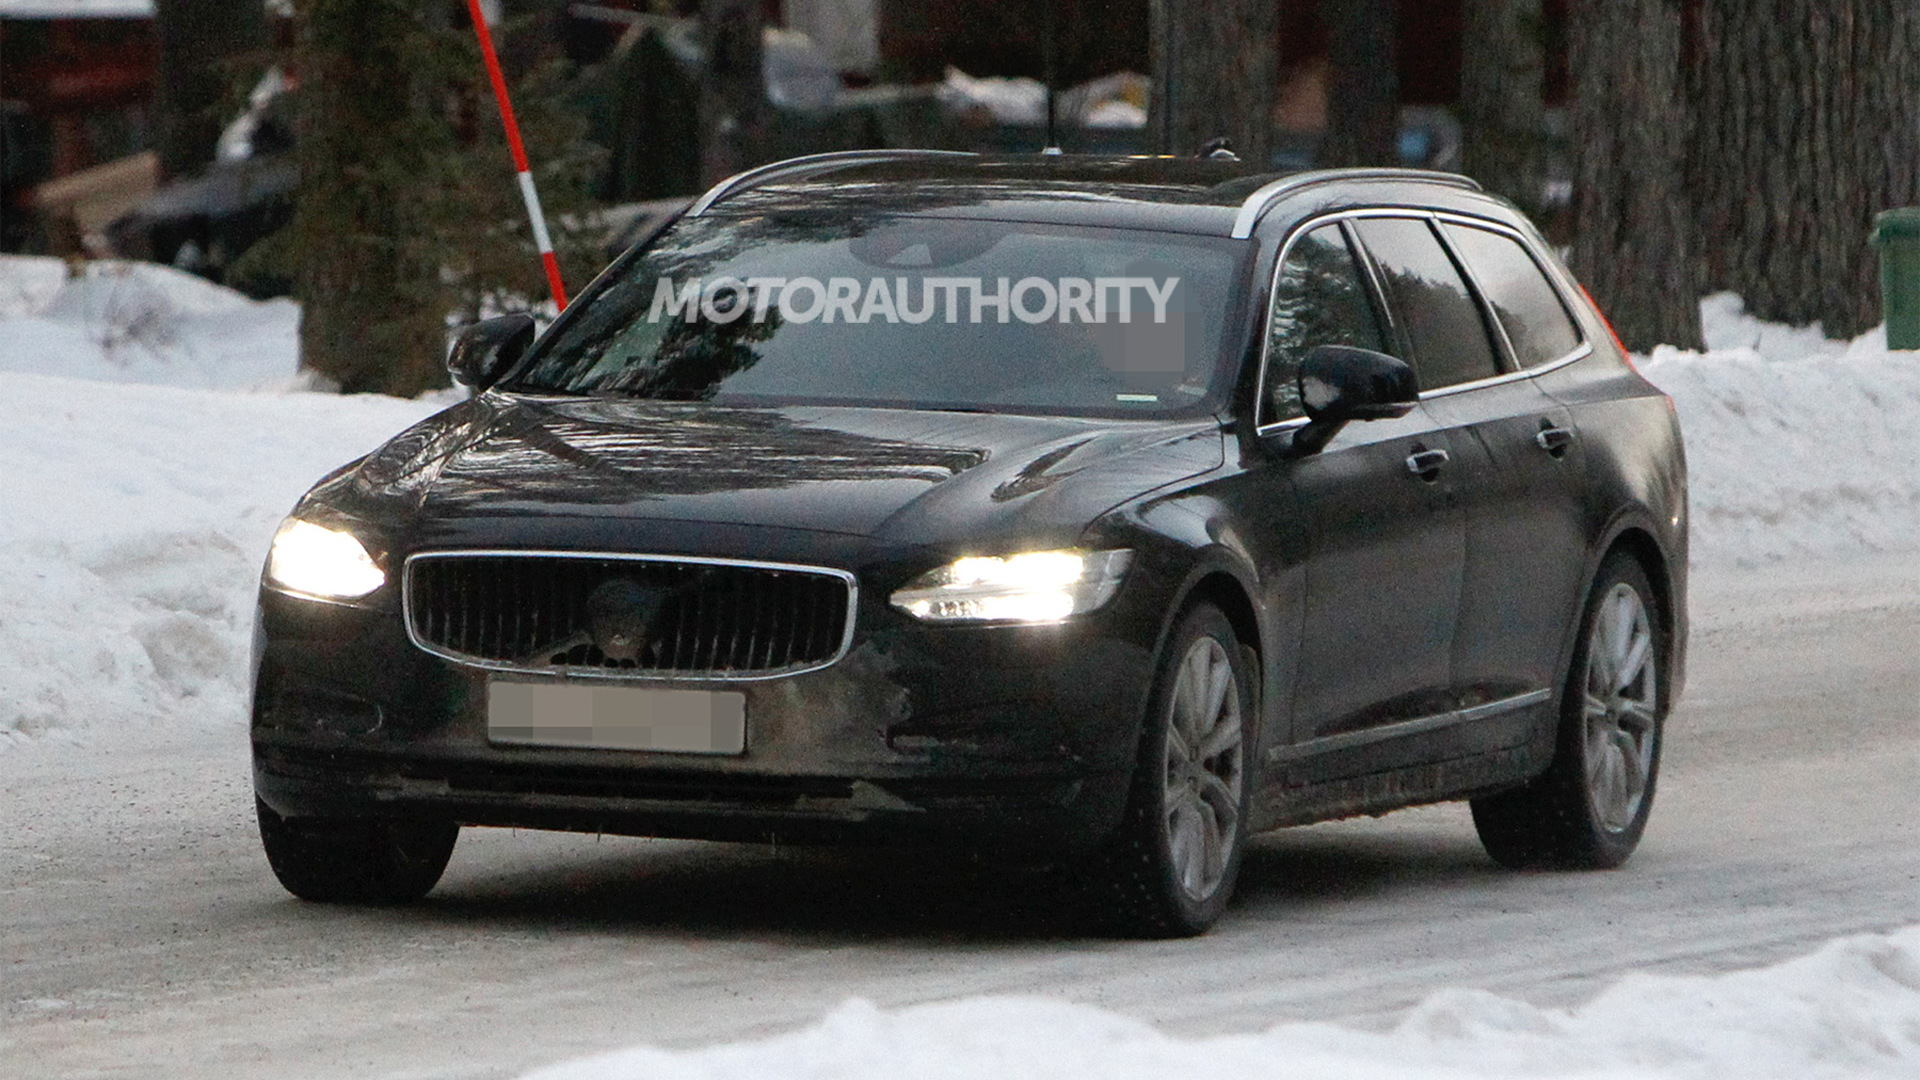 2021 Volvo V90 facelift spy shots - Photo credit: S. Baldauf/SB-Medien